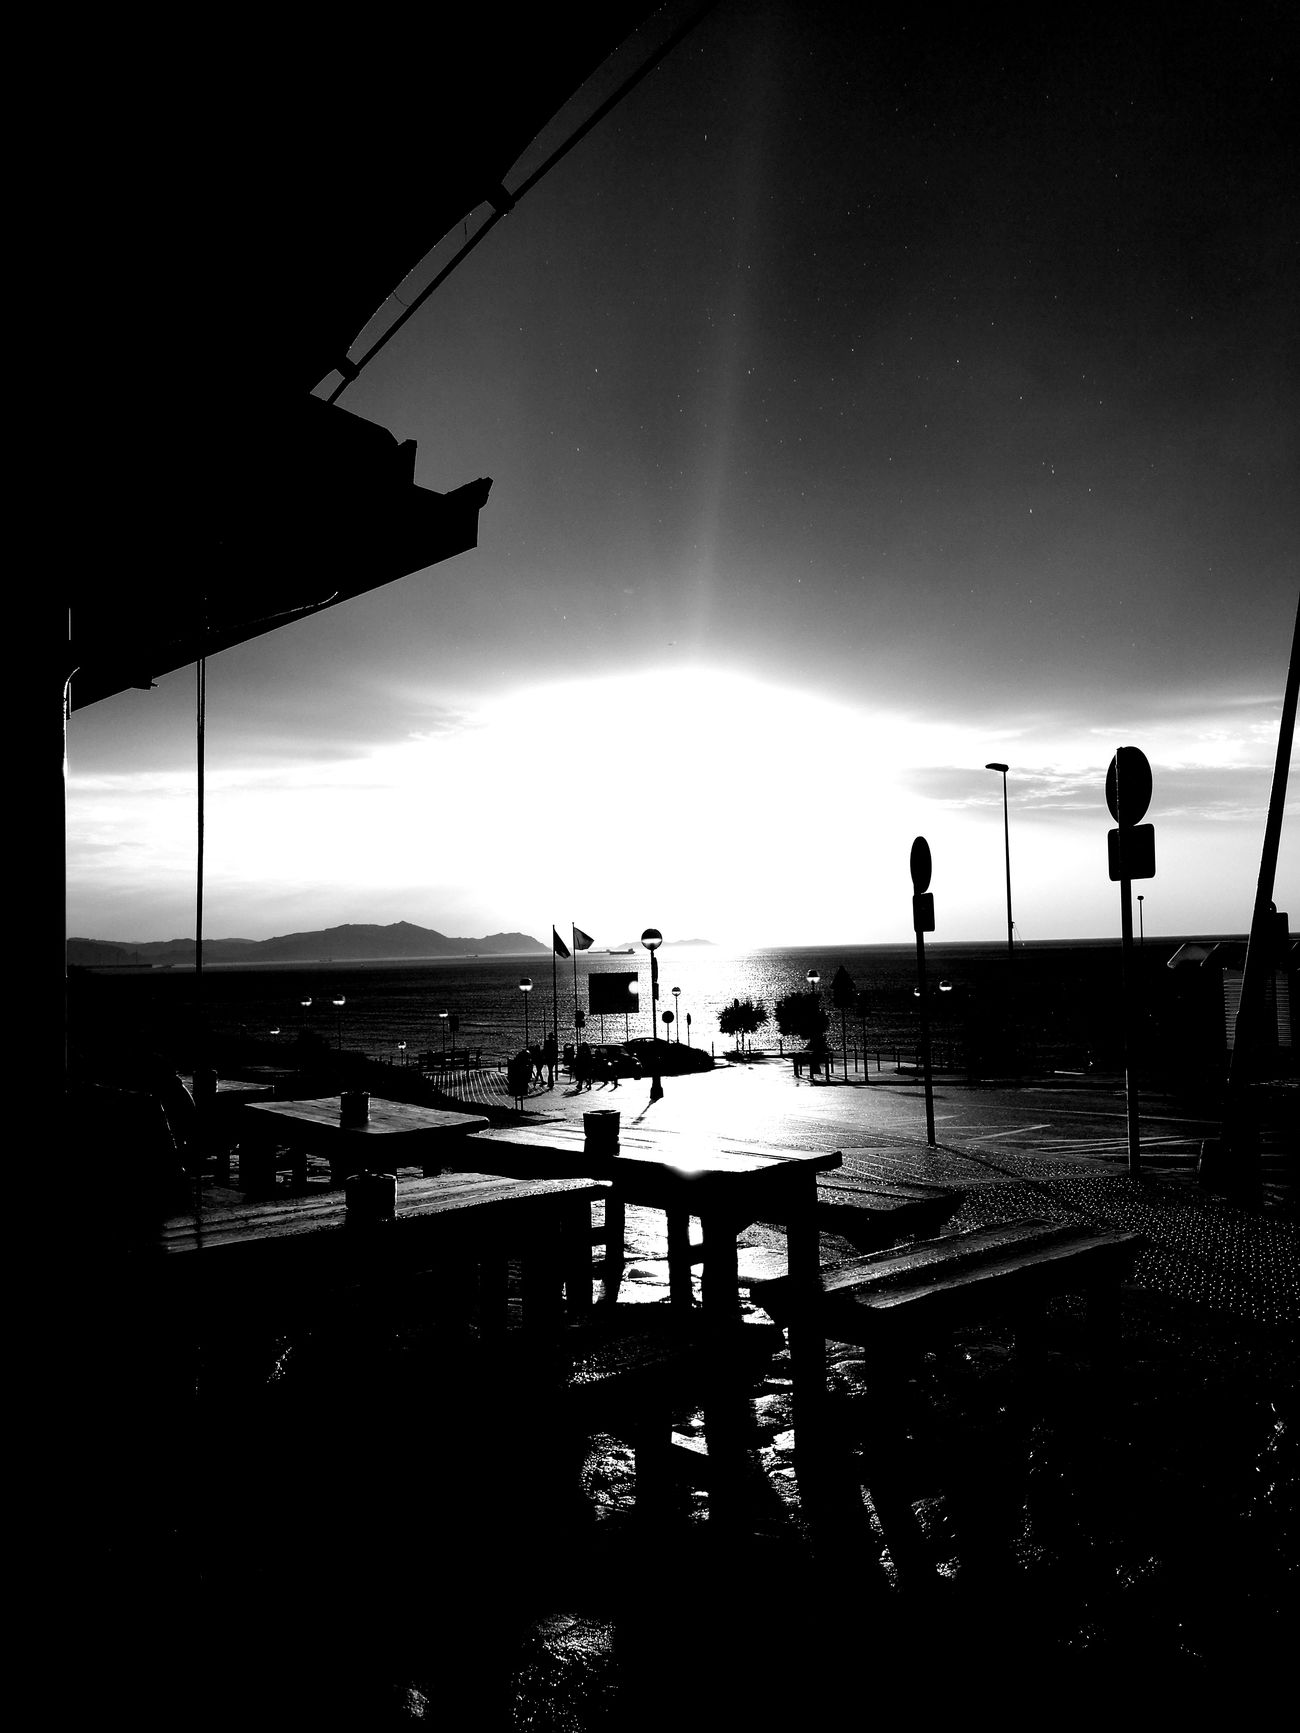 Nofilters Black And White Drops Of Water Gotasdelluvia Perfect Moment Perfect Day Friends ❤ Bilbaolovers Sea And Sky Landscape